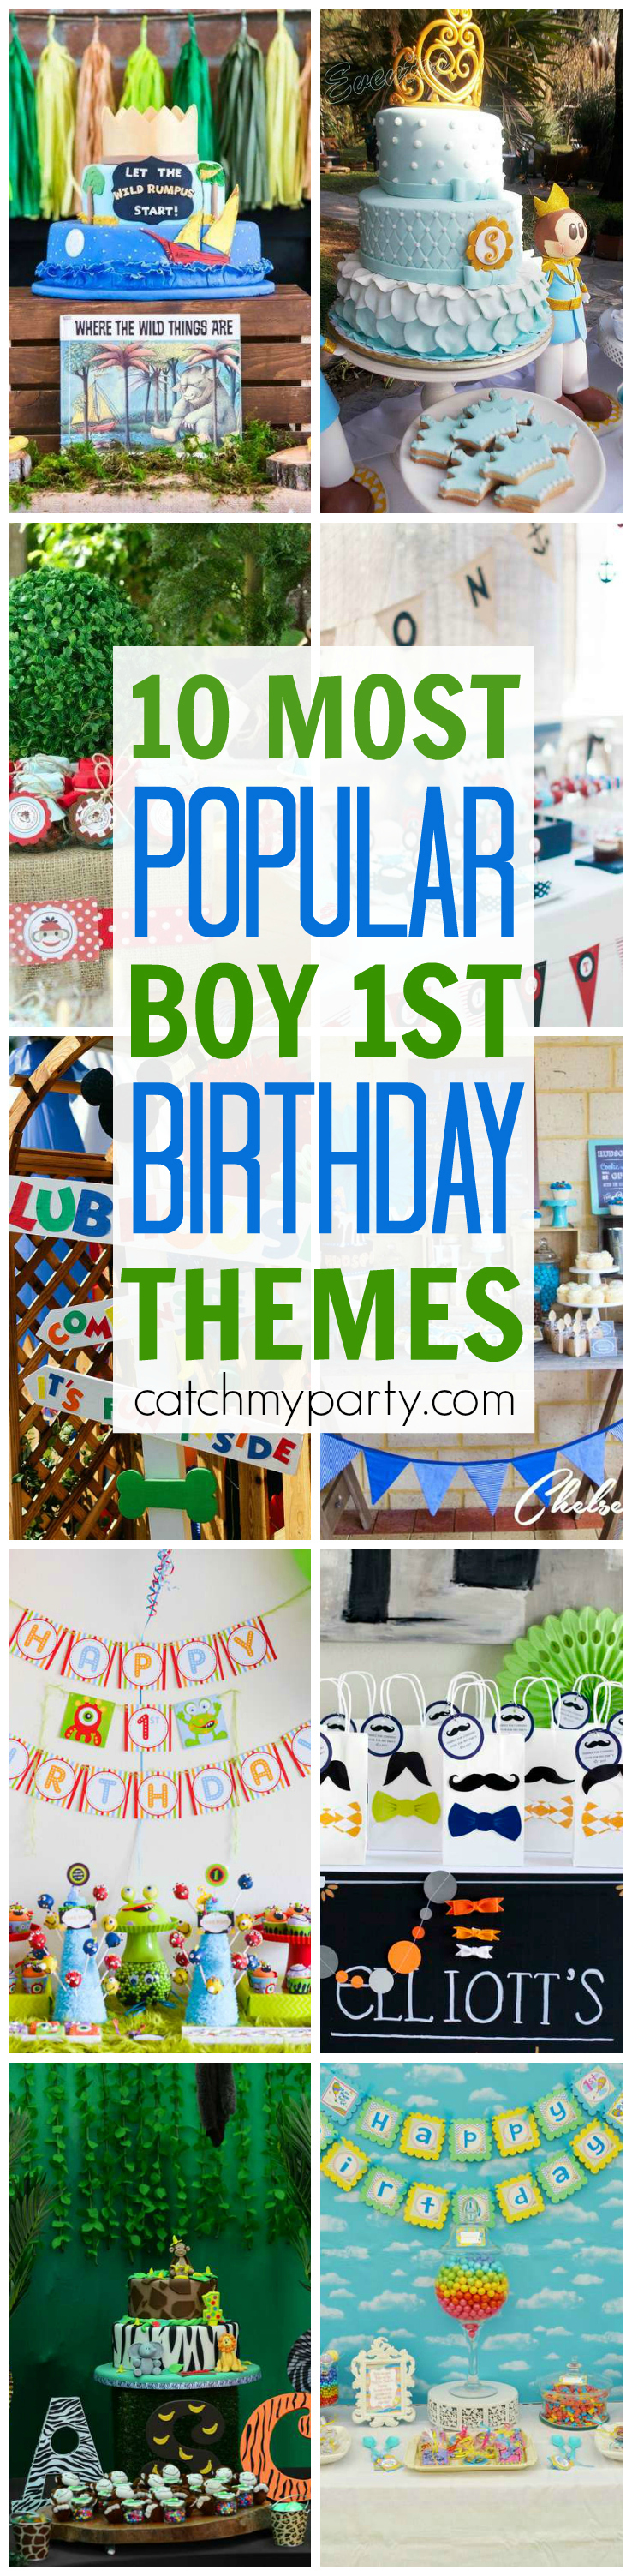 Boy 1st Birthday Party Themes